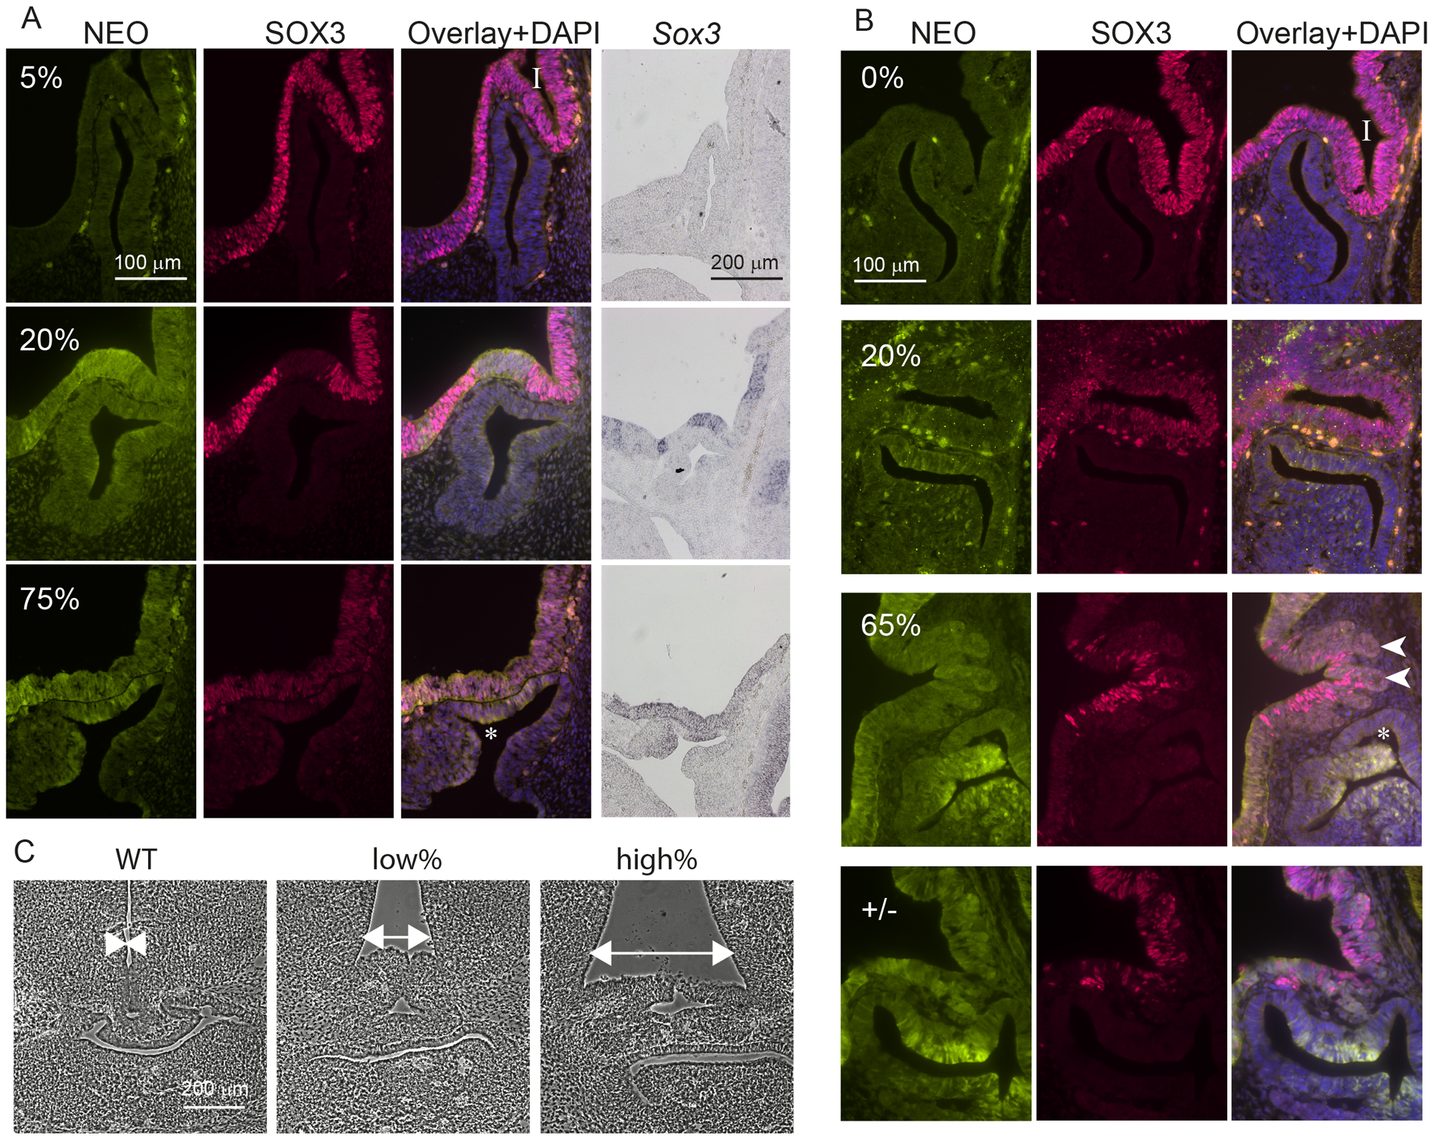 <i>Sox3</i>-26ala cells cause pituitary defects indistinguishable from <i>Sox3</i>-null cells.